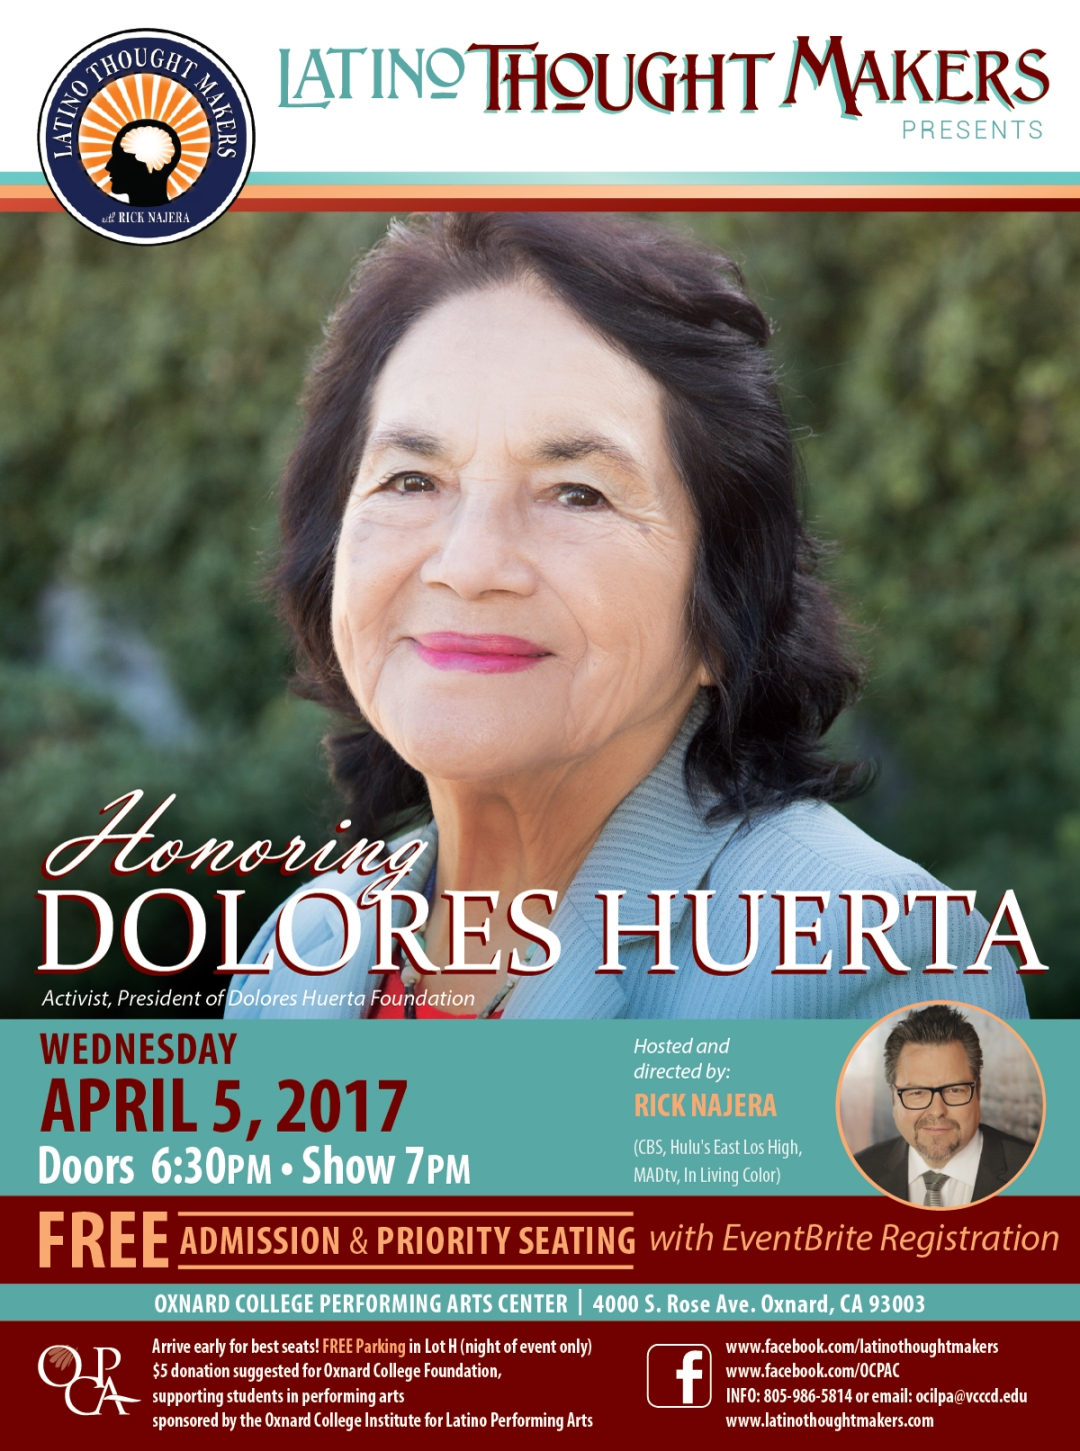 Latino Thought Makers Rick Najera and Dolores Huerta